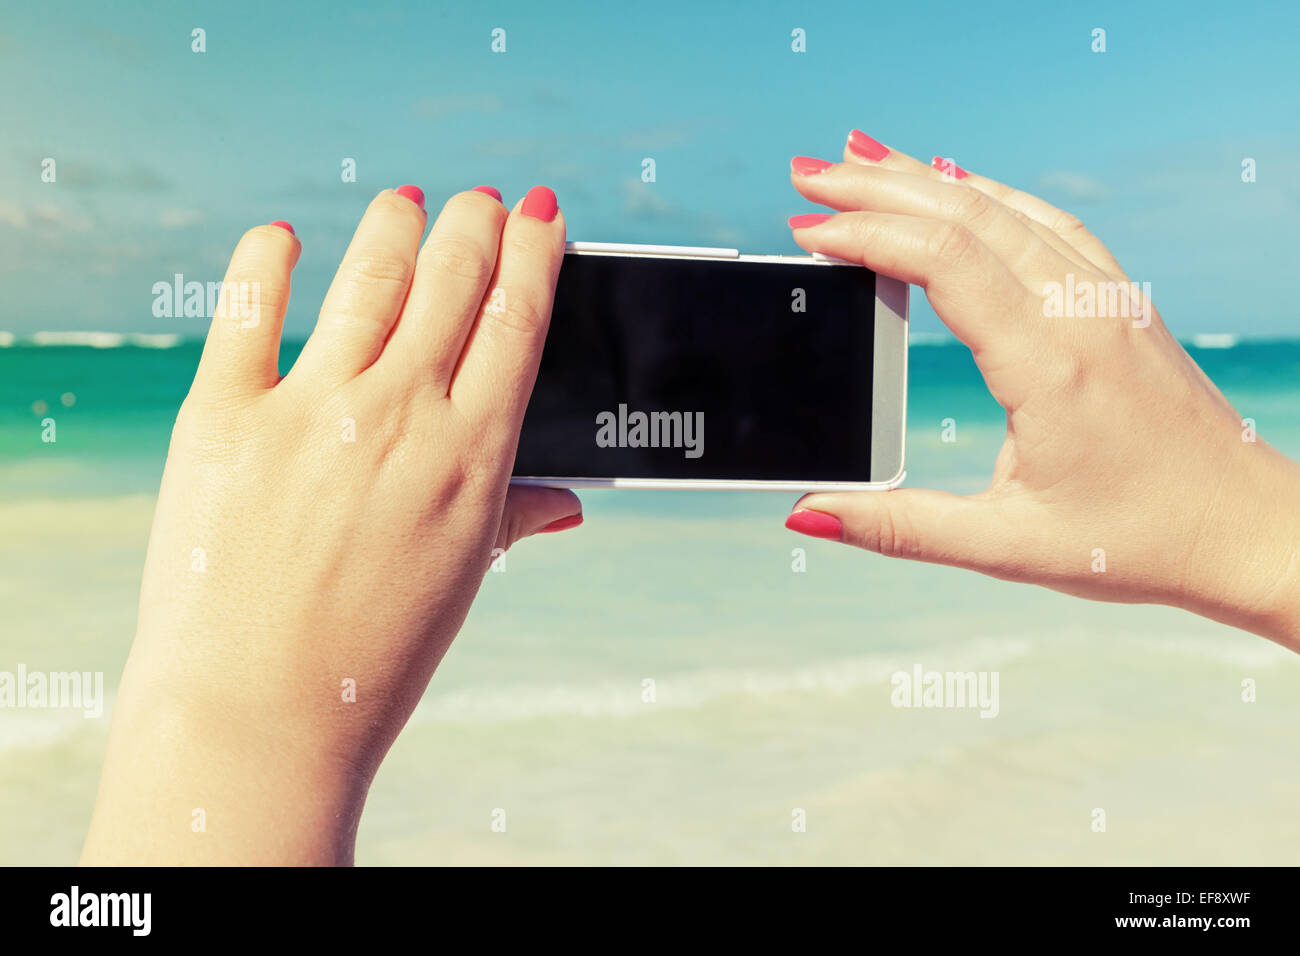 Woman using smart phone for taking outdoor photo on a beach